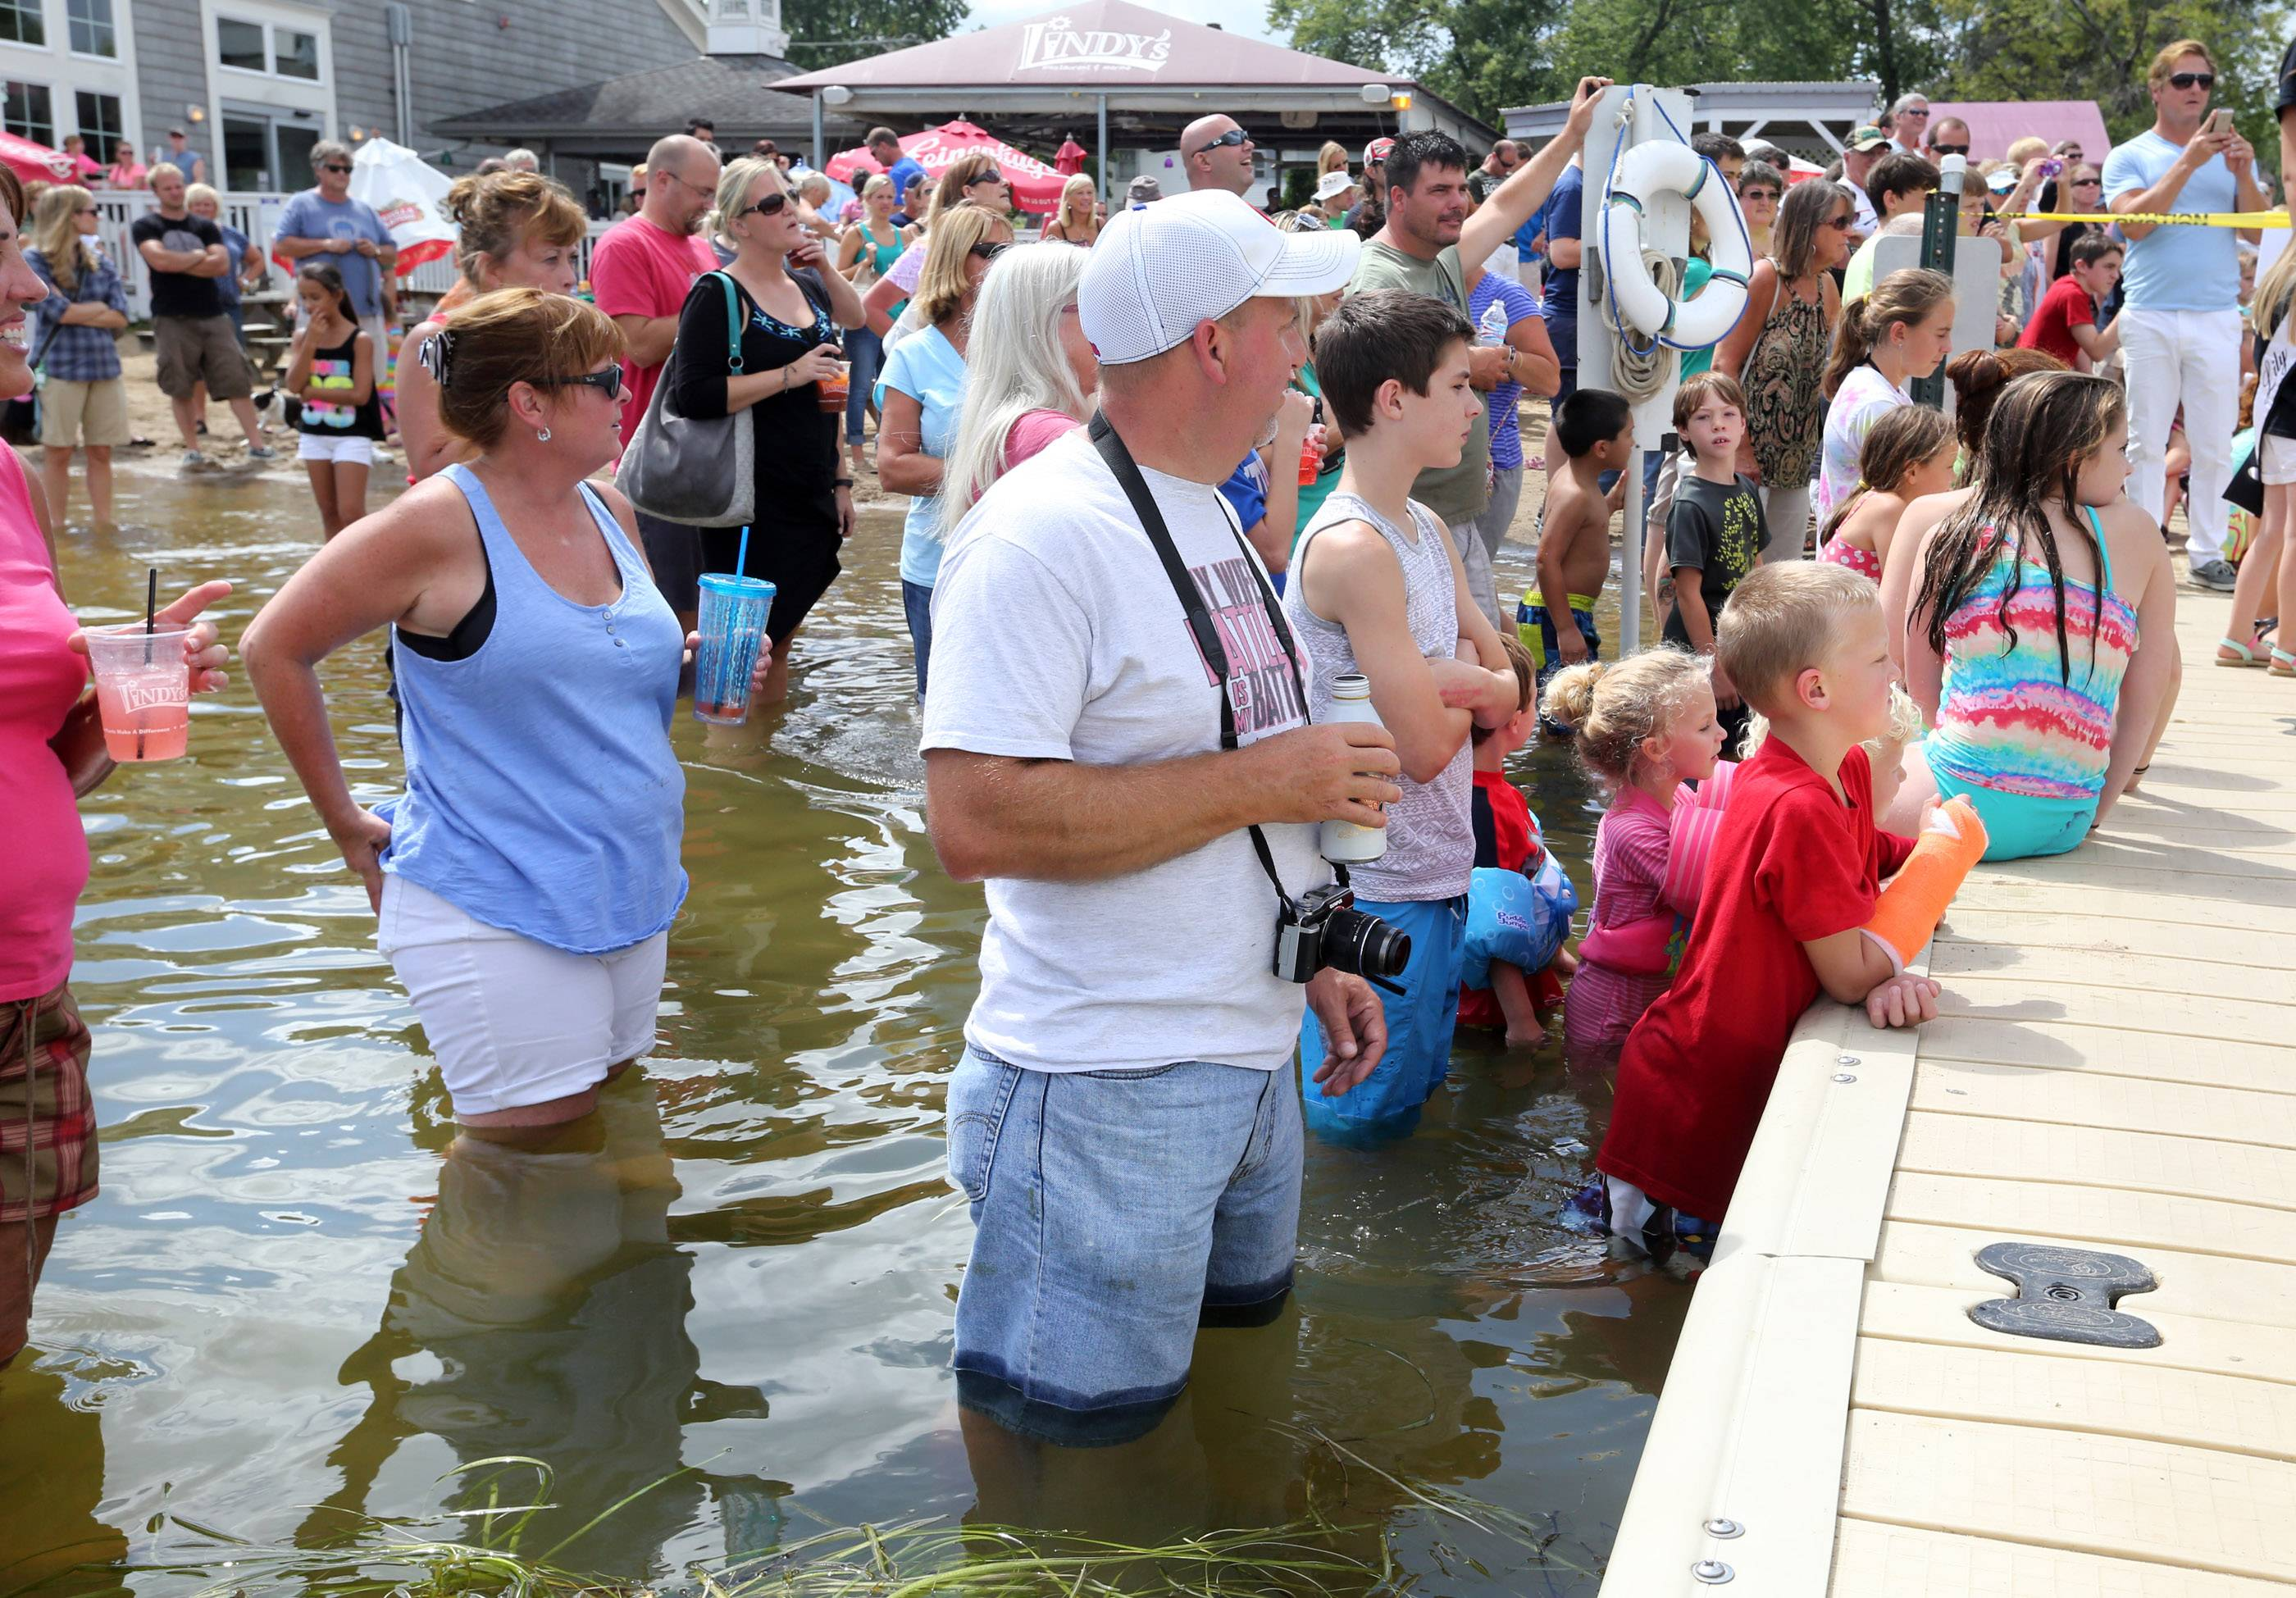 It was standing room only at the 13th Annual Labor Day Cardboard Boat Races at Lindy's Landing on Saturday at Wauconda's Bangs Lake.